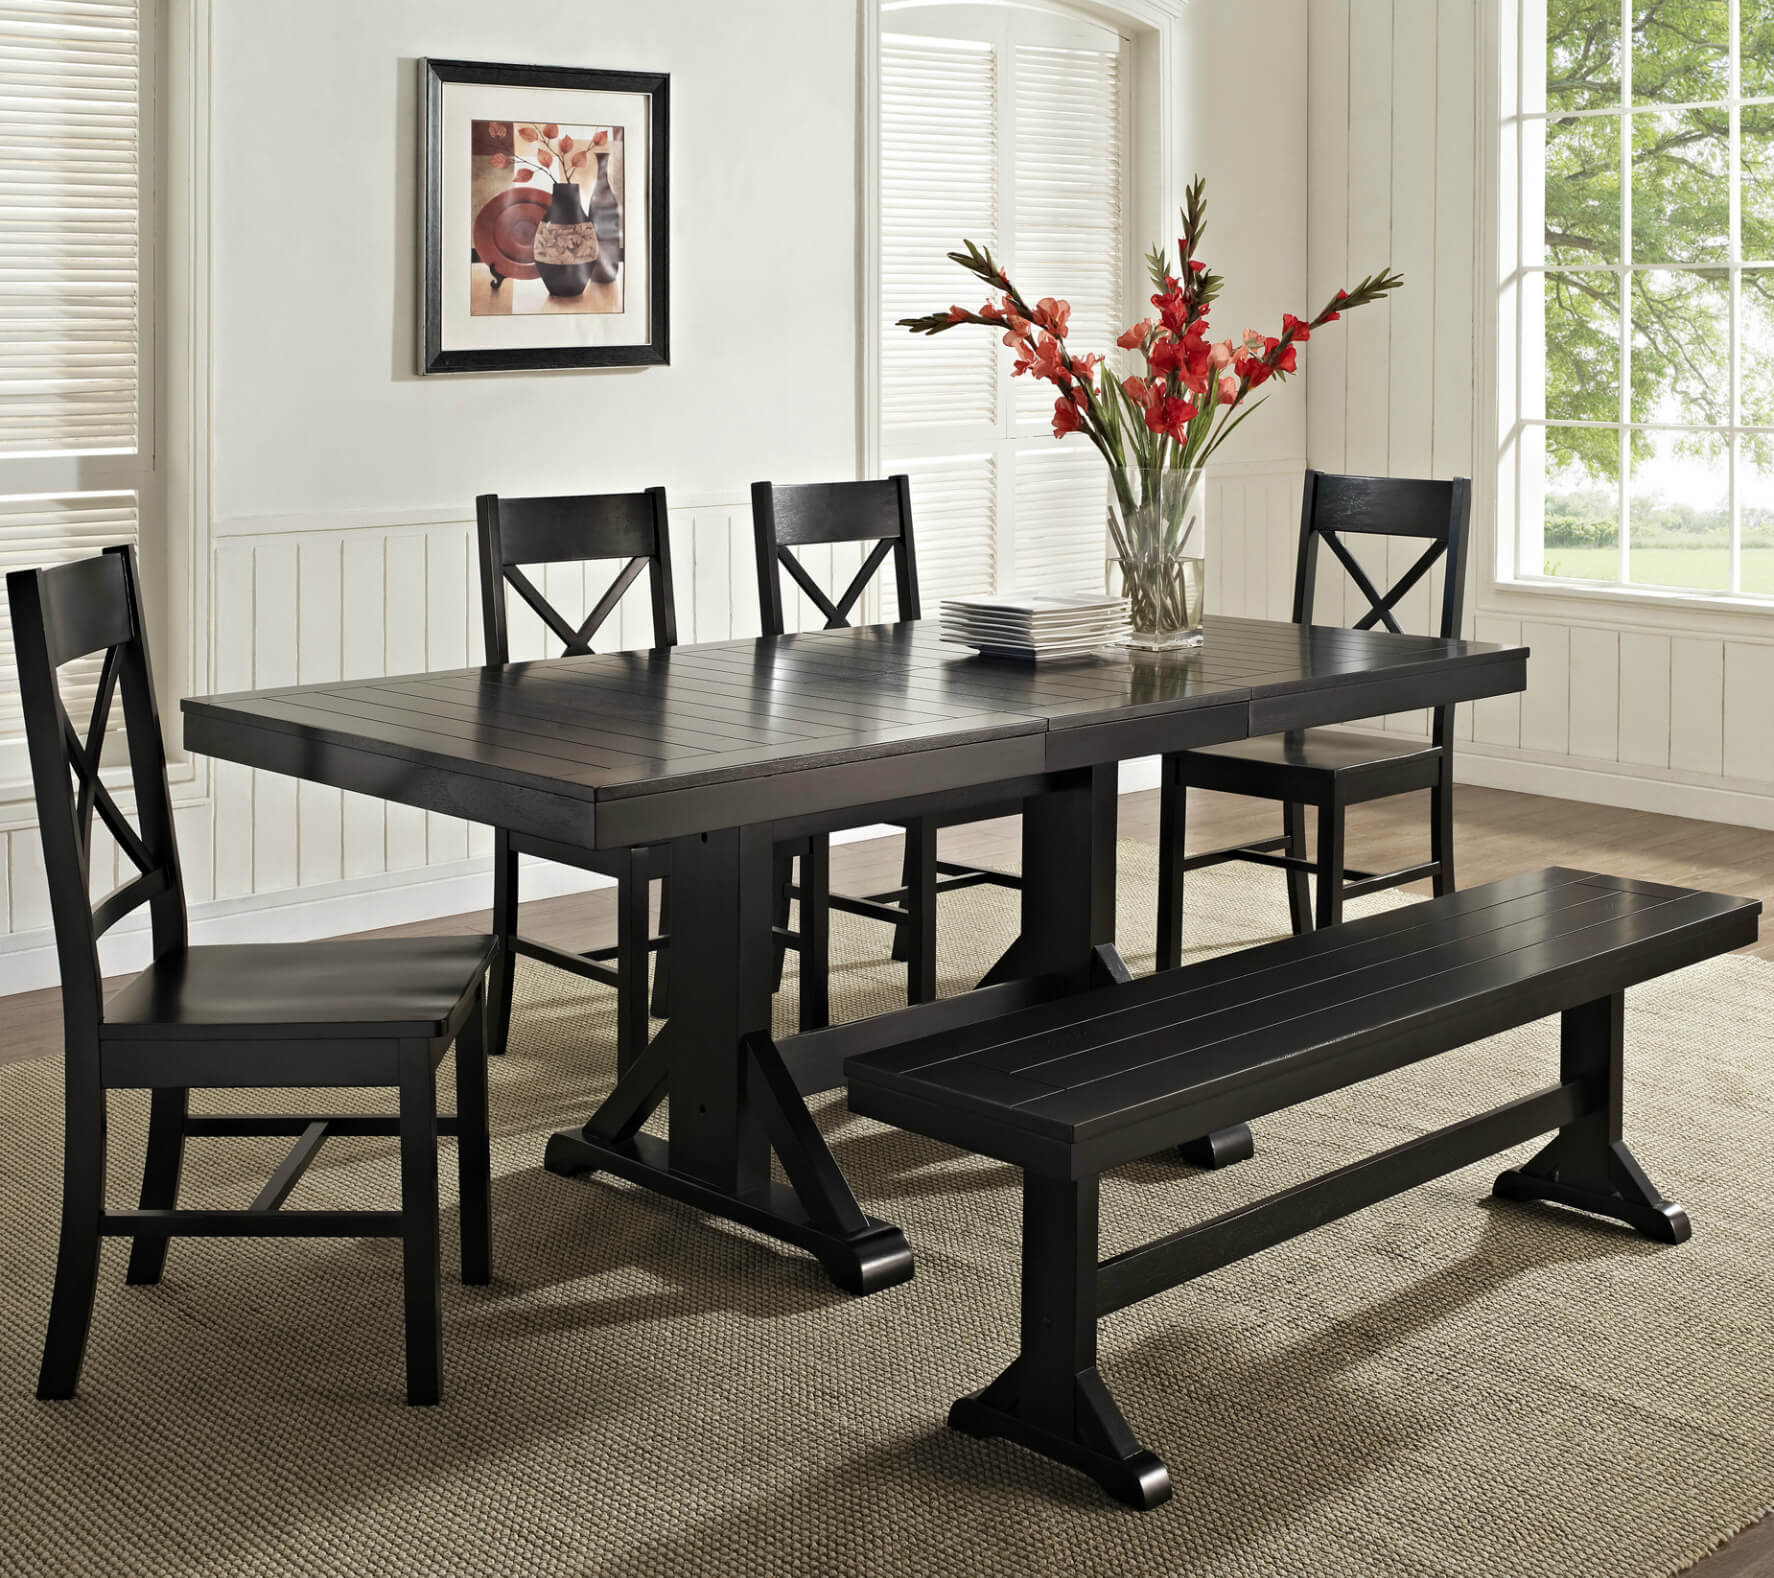 Dining Room Sets With Bench: 26 Dining Room Sets (Big And Small) With Bench Seating (2019